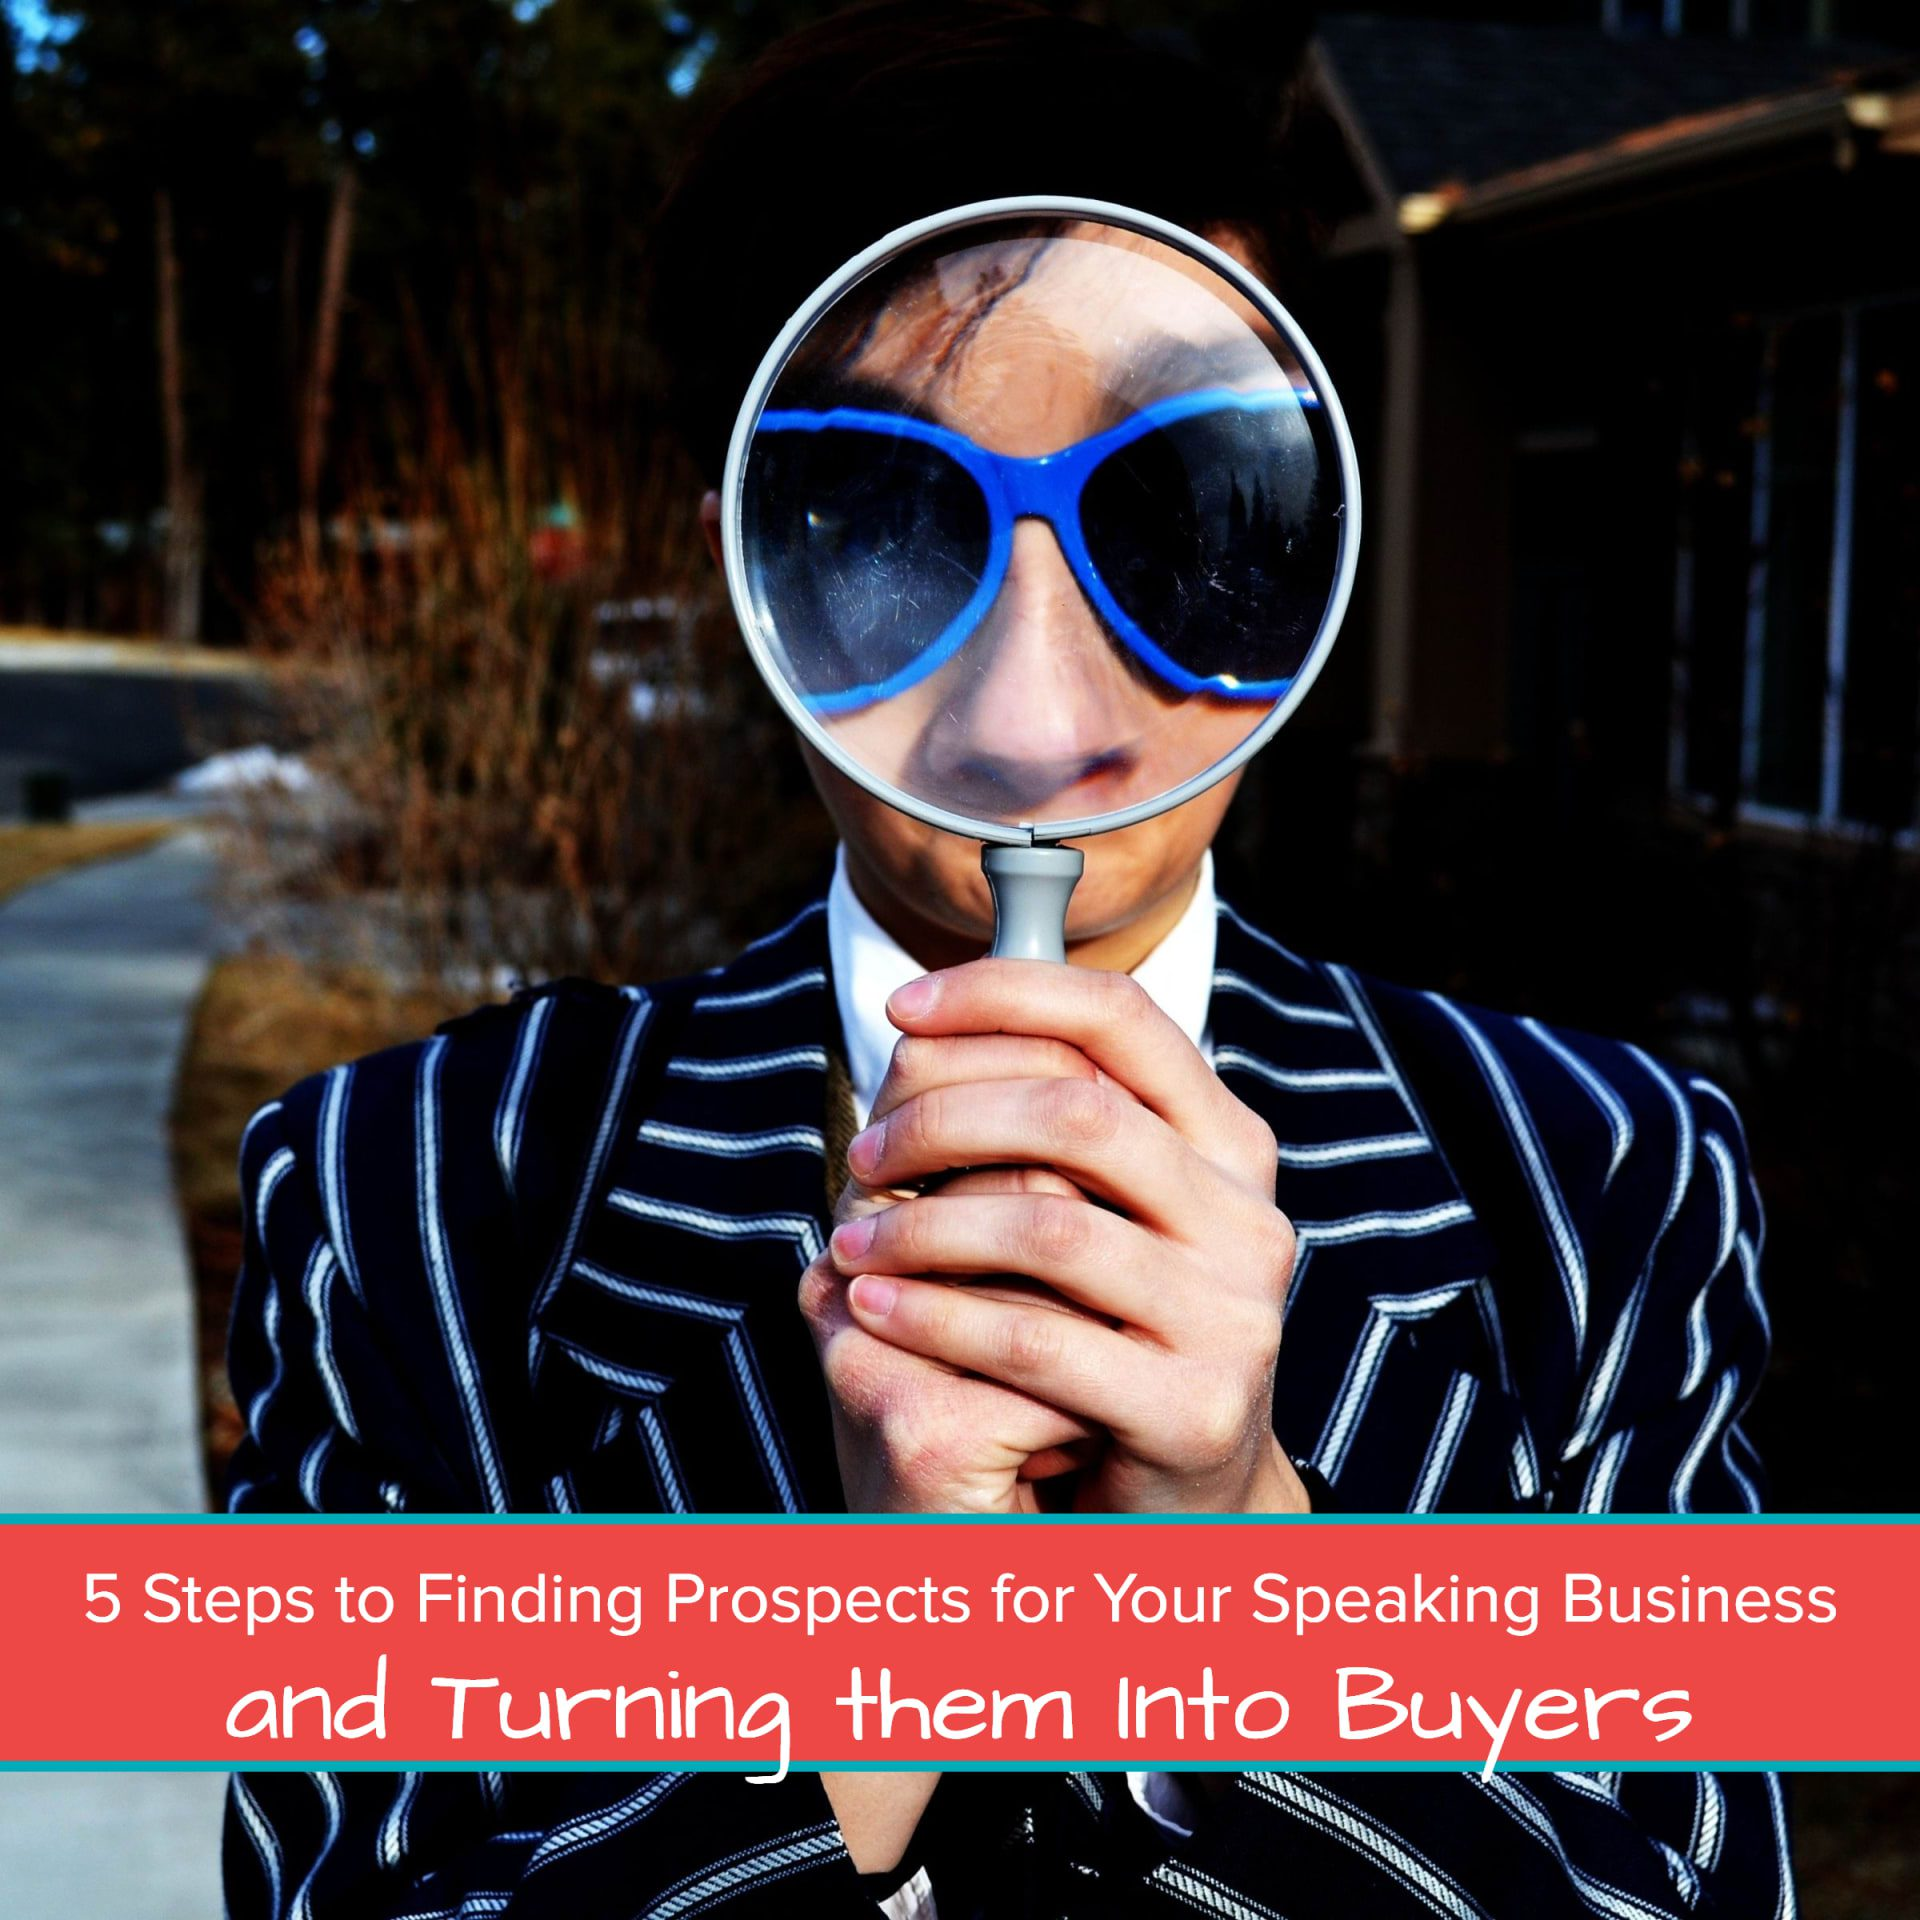 5 Steps to Finding Prospects for Your Speaking Business and Turning them Into Buyers - feature image